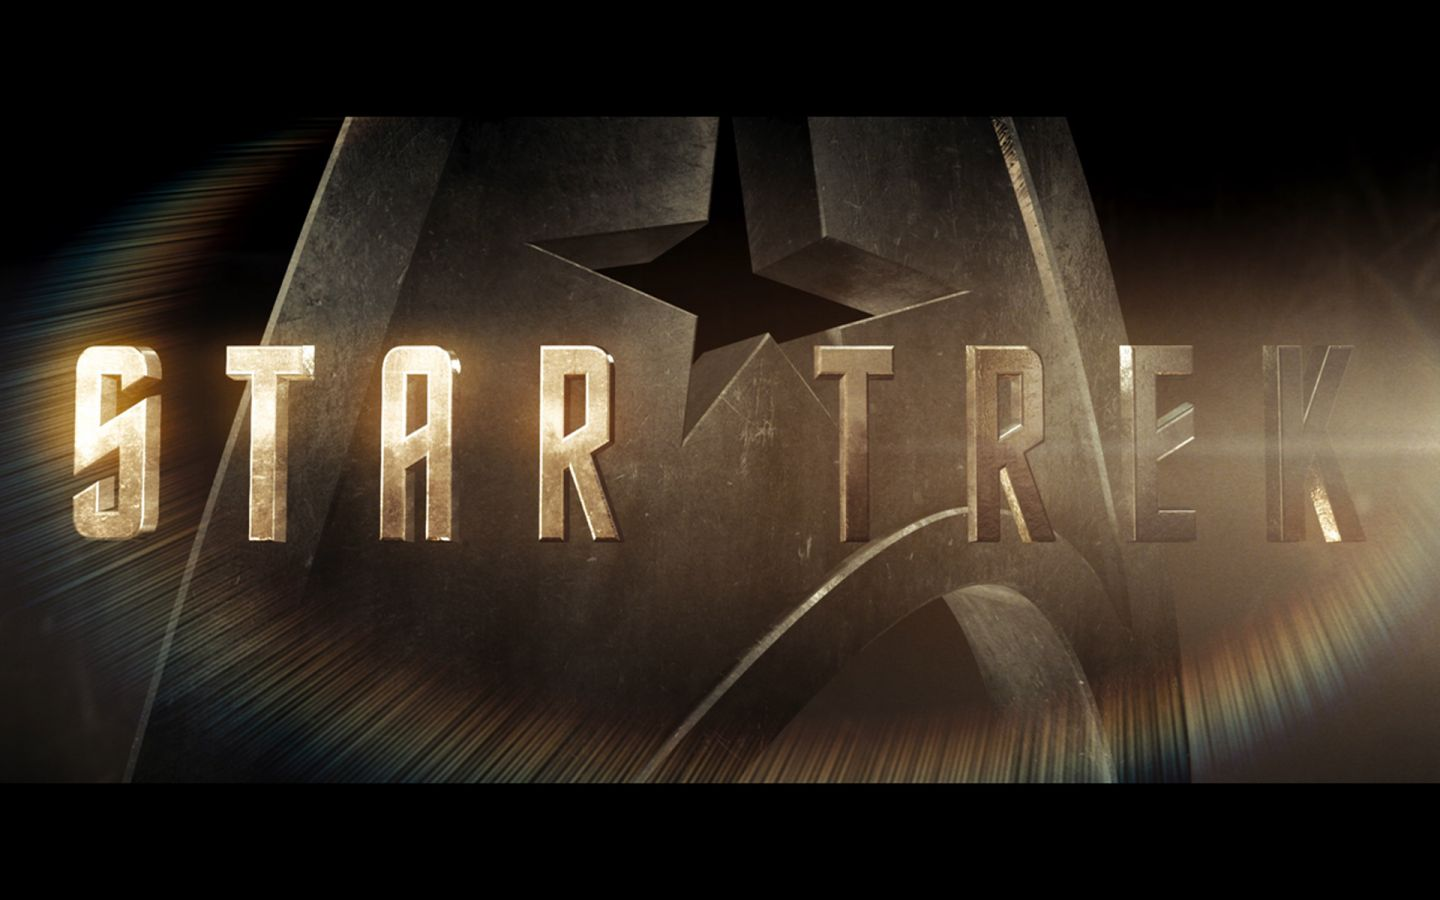 Star Trek 2009 Title Logo Wallpaper 1440900 Star Trek Wallpaper 1440x900